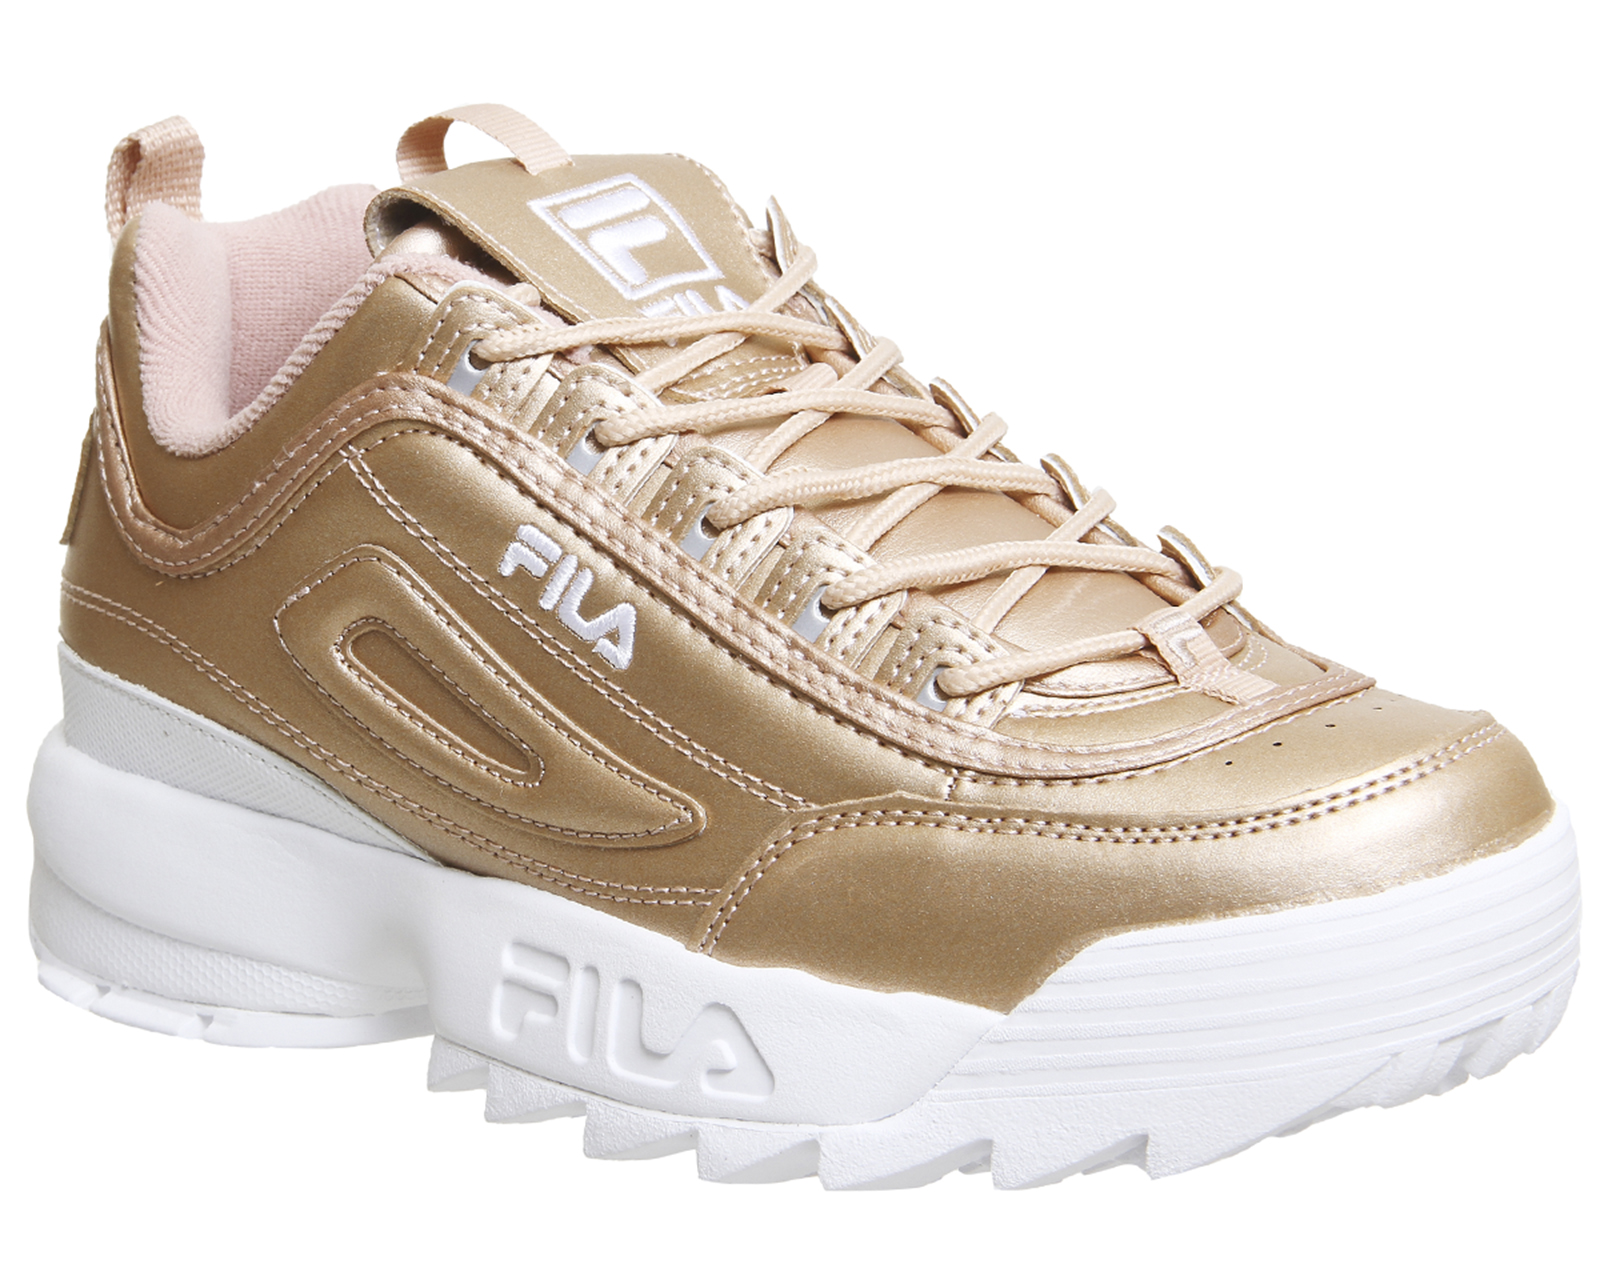 c831630a98 Sentinel Womens Fila Disruptor Ii Trainers ROSE GOLD METALLIC Trainers Shoes